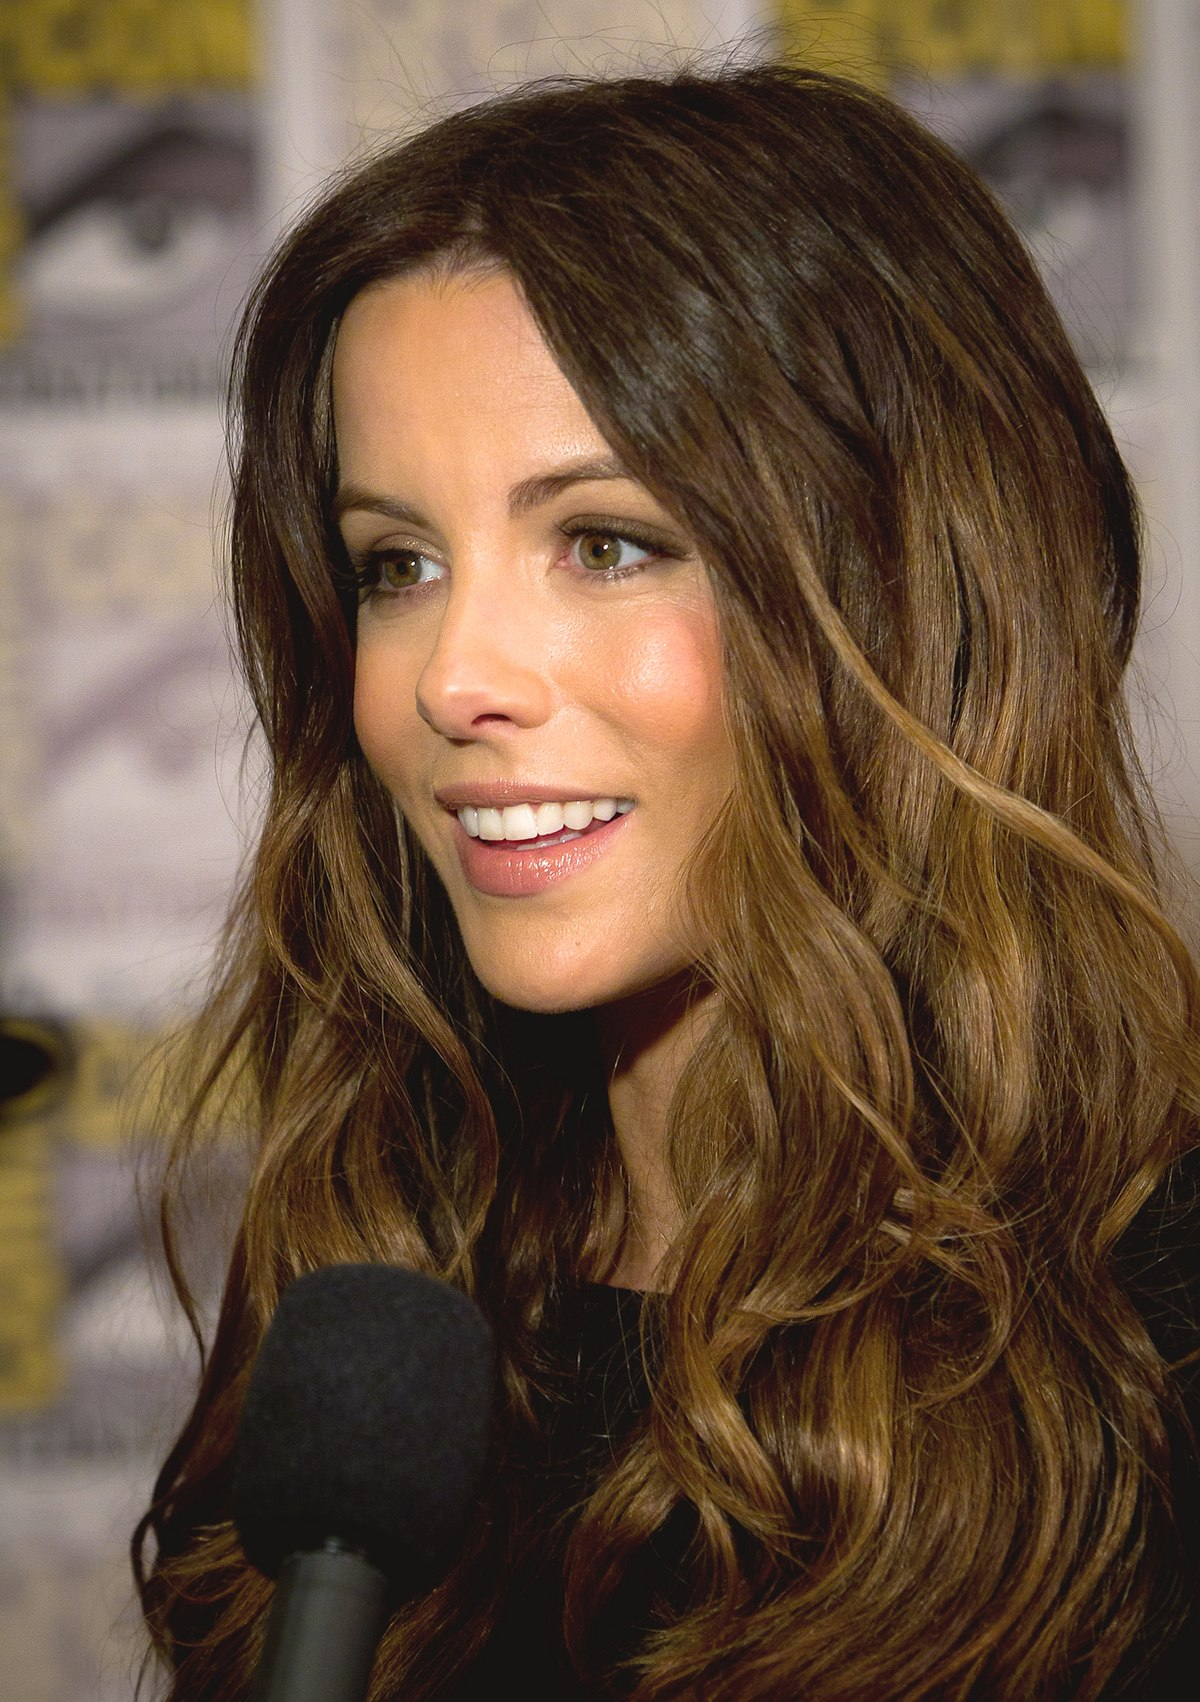 Kate Beckinsale - Wikipedia